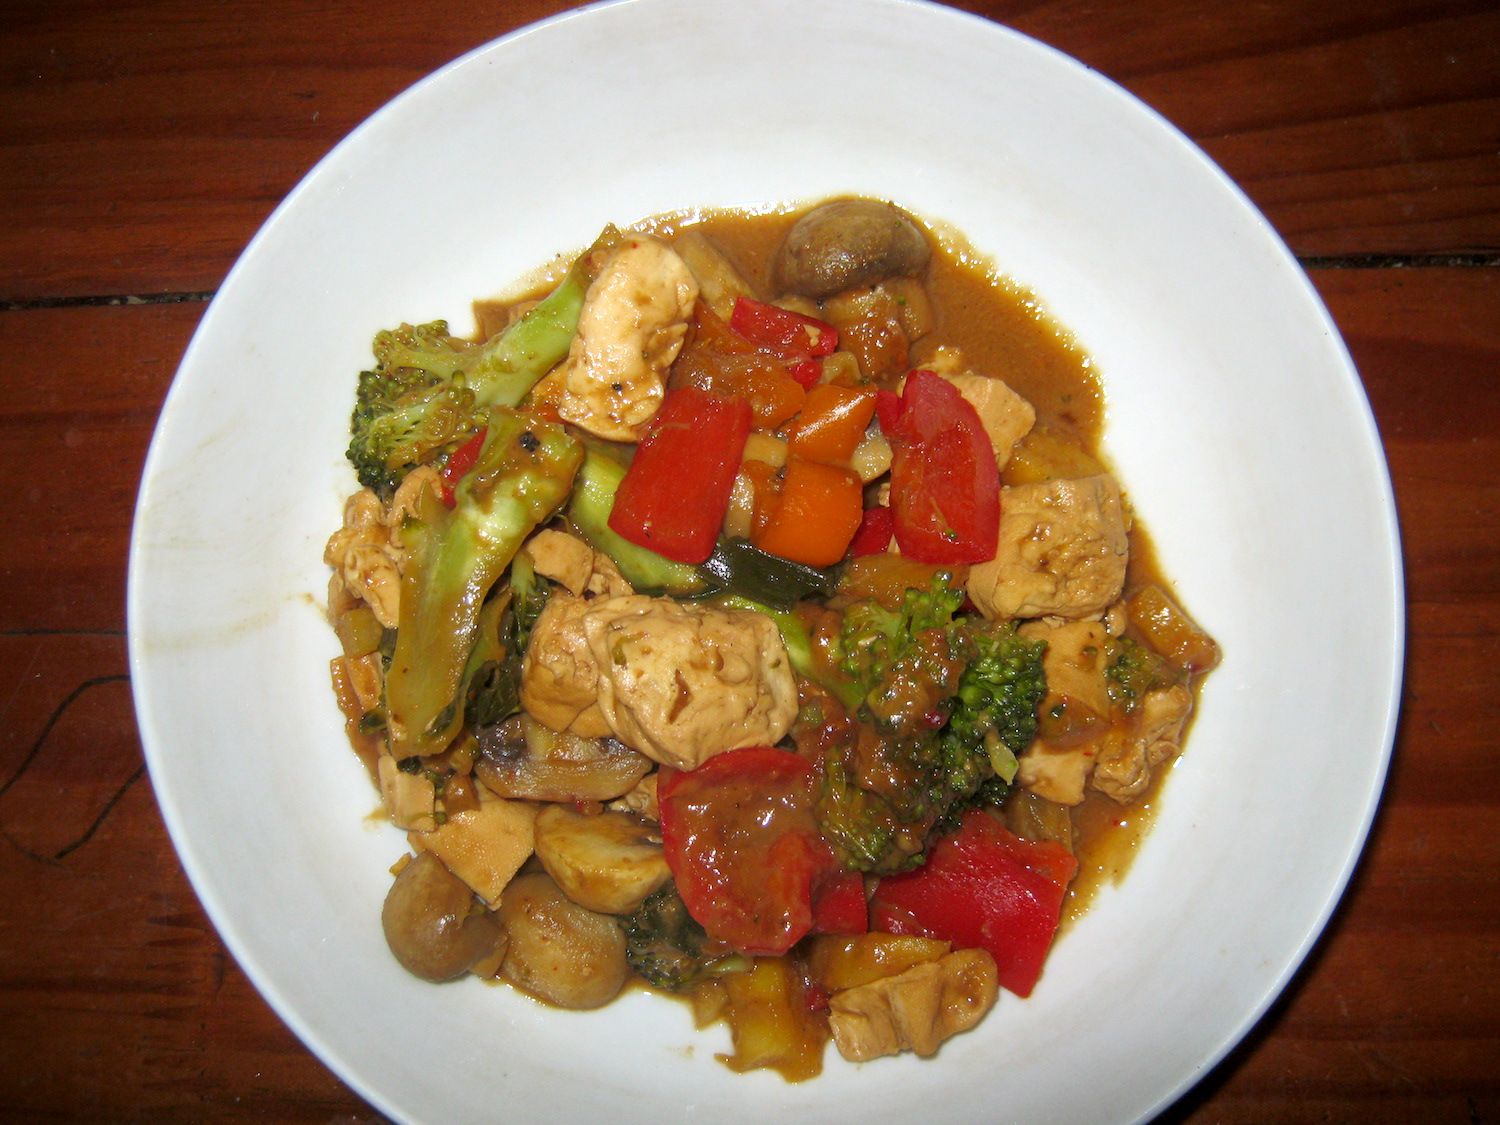 Vegan - Fried Tofu and Veggies in Peanut and Pineapple Sauce